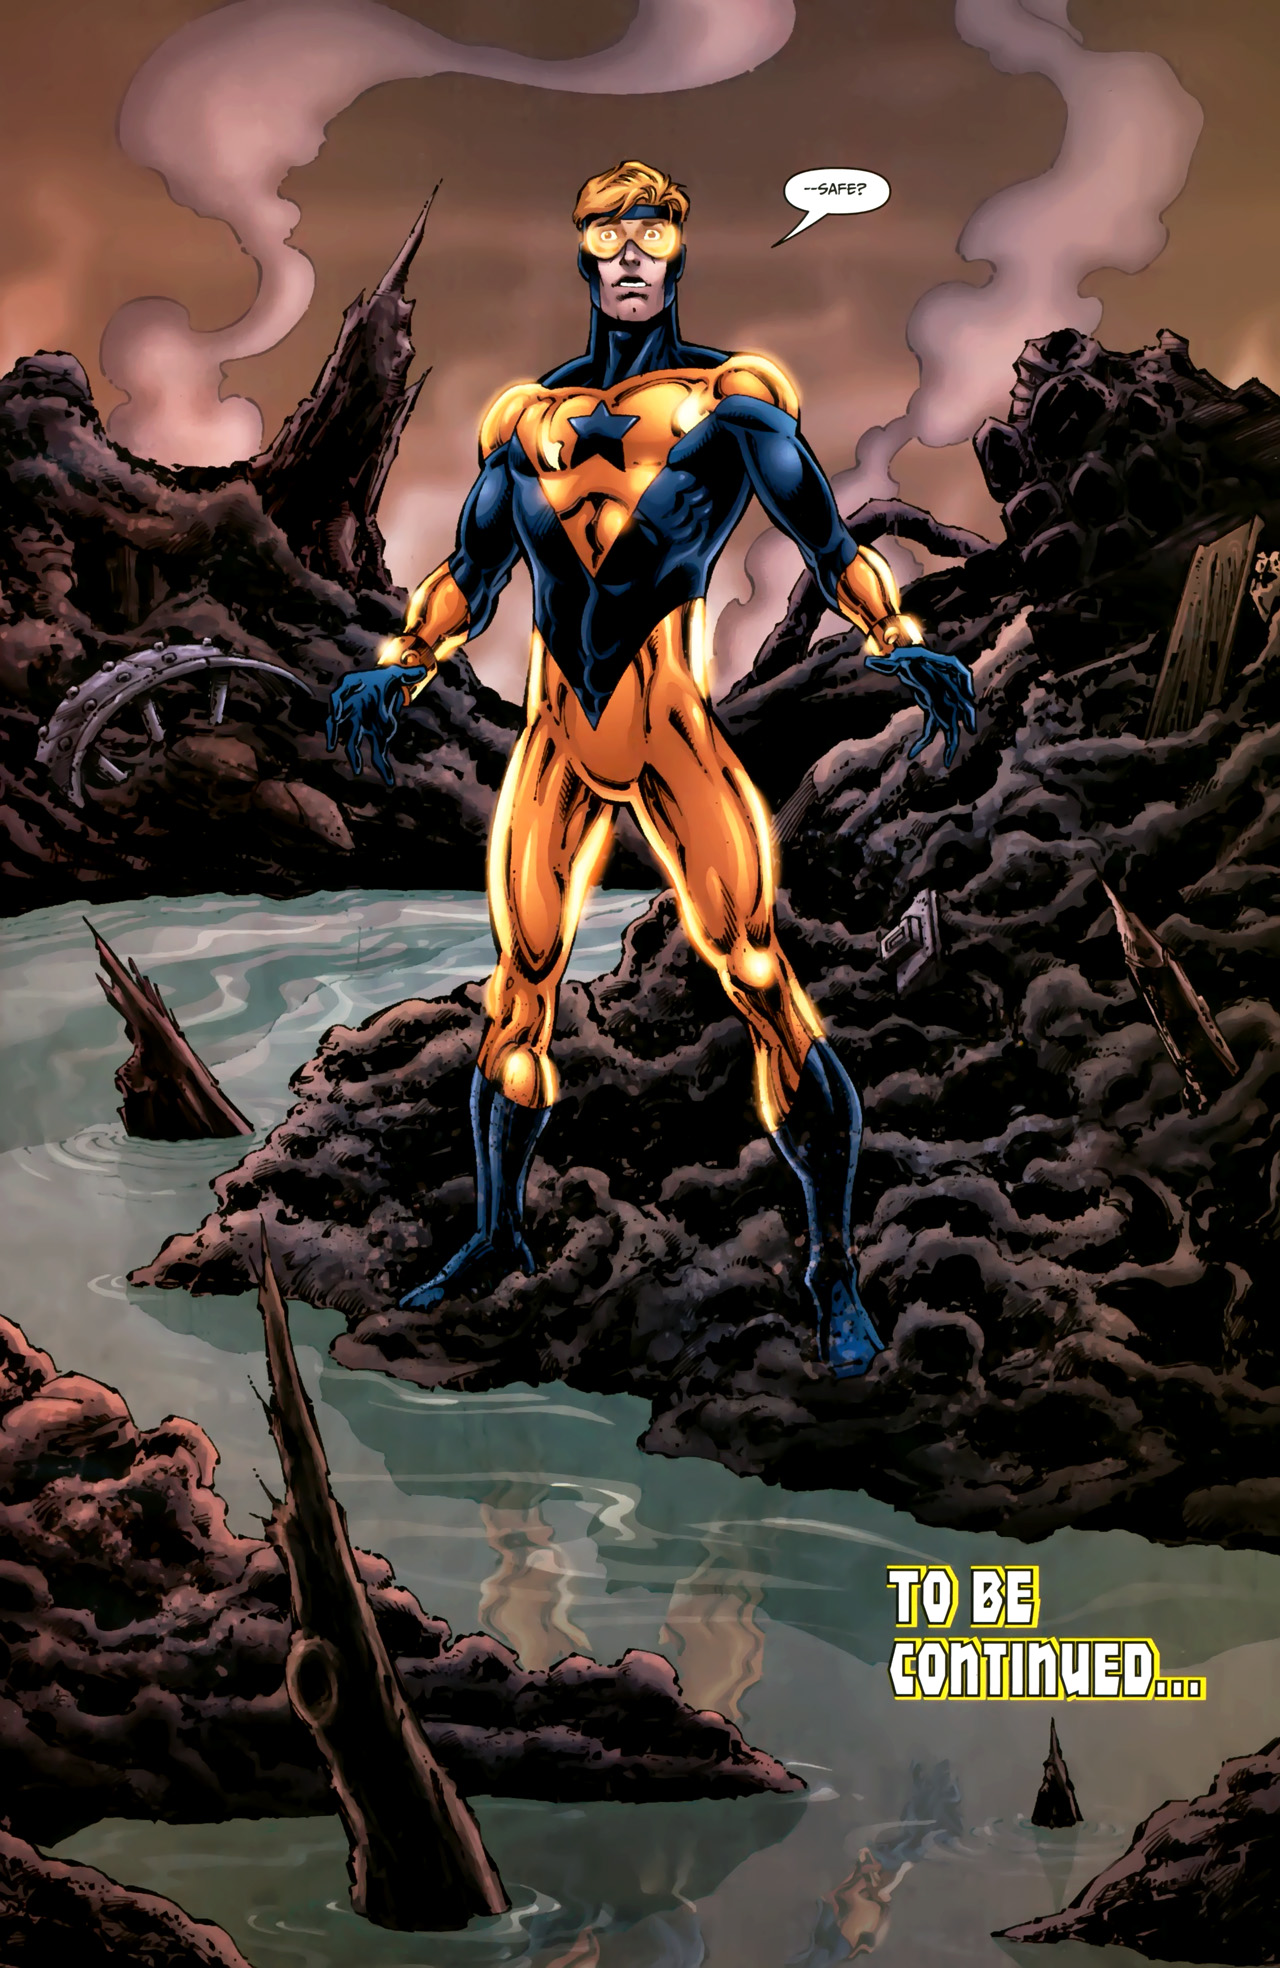 booster gold might not be safe booster gold might not be safe